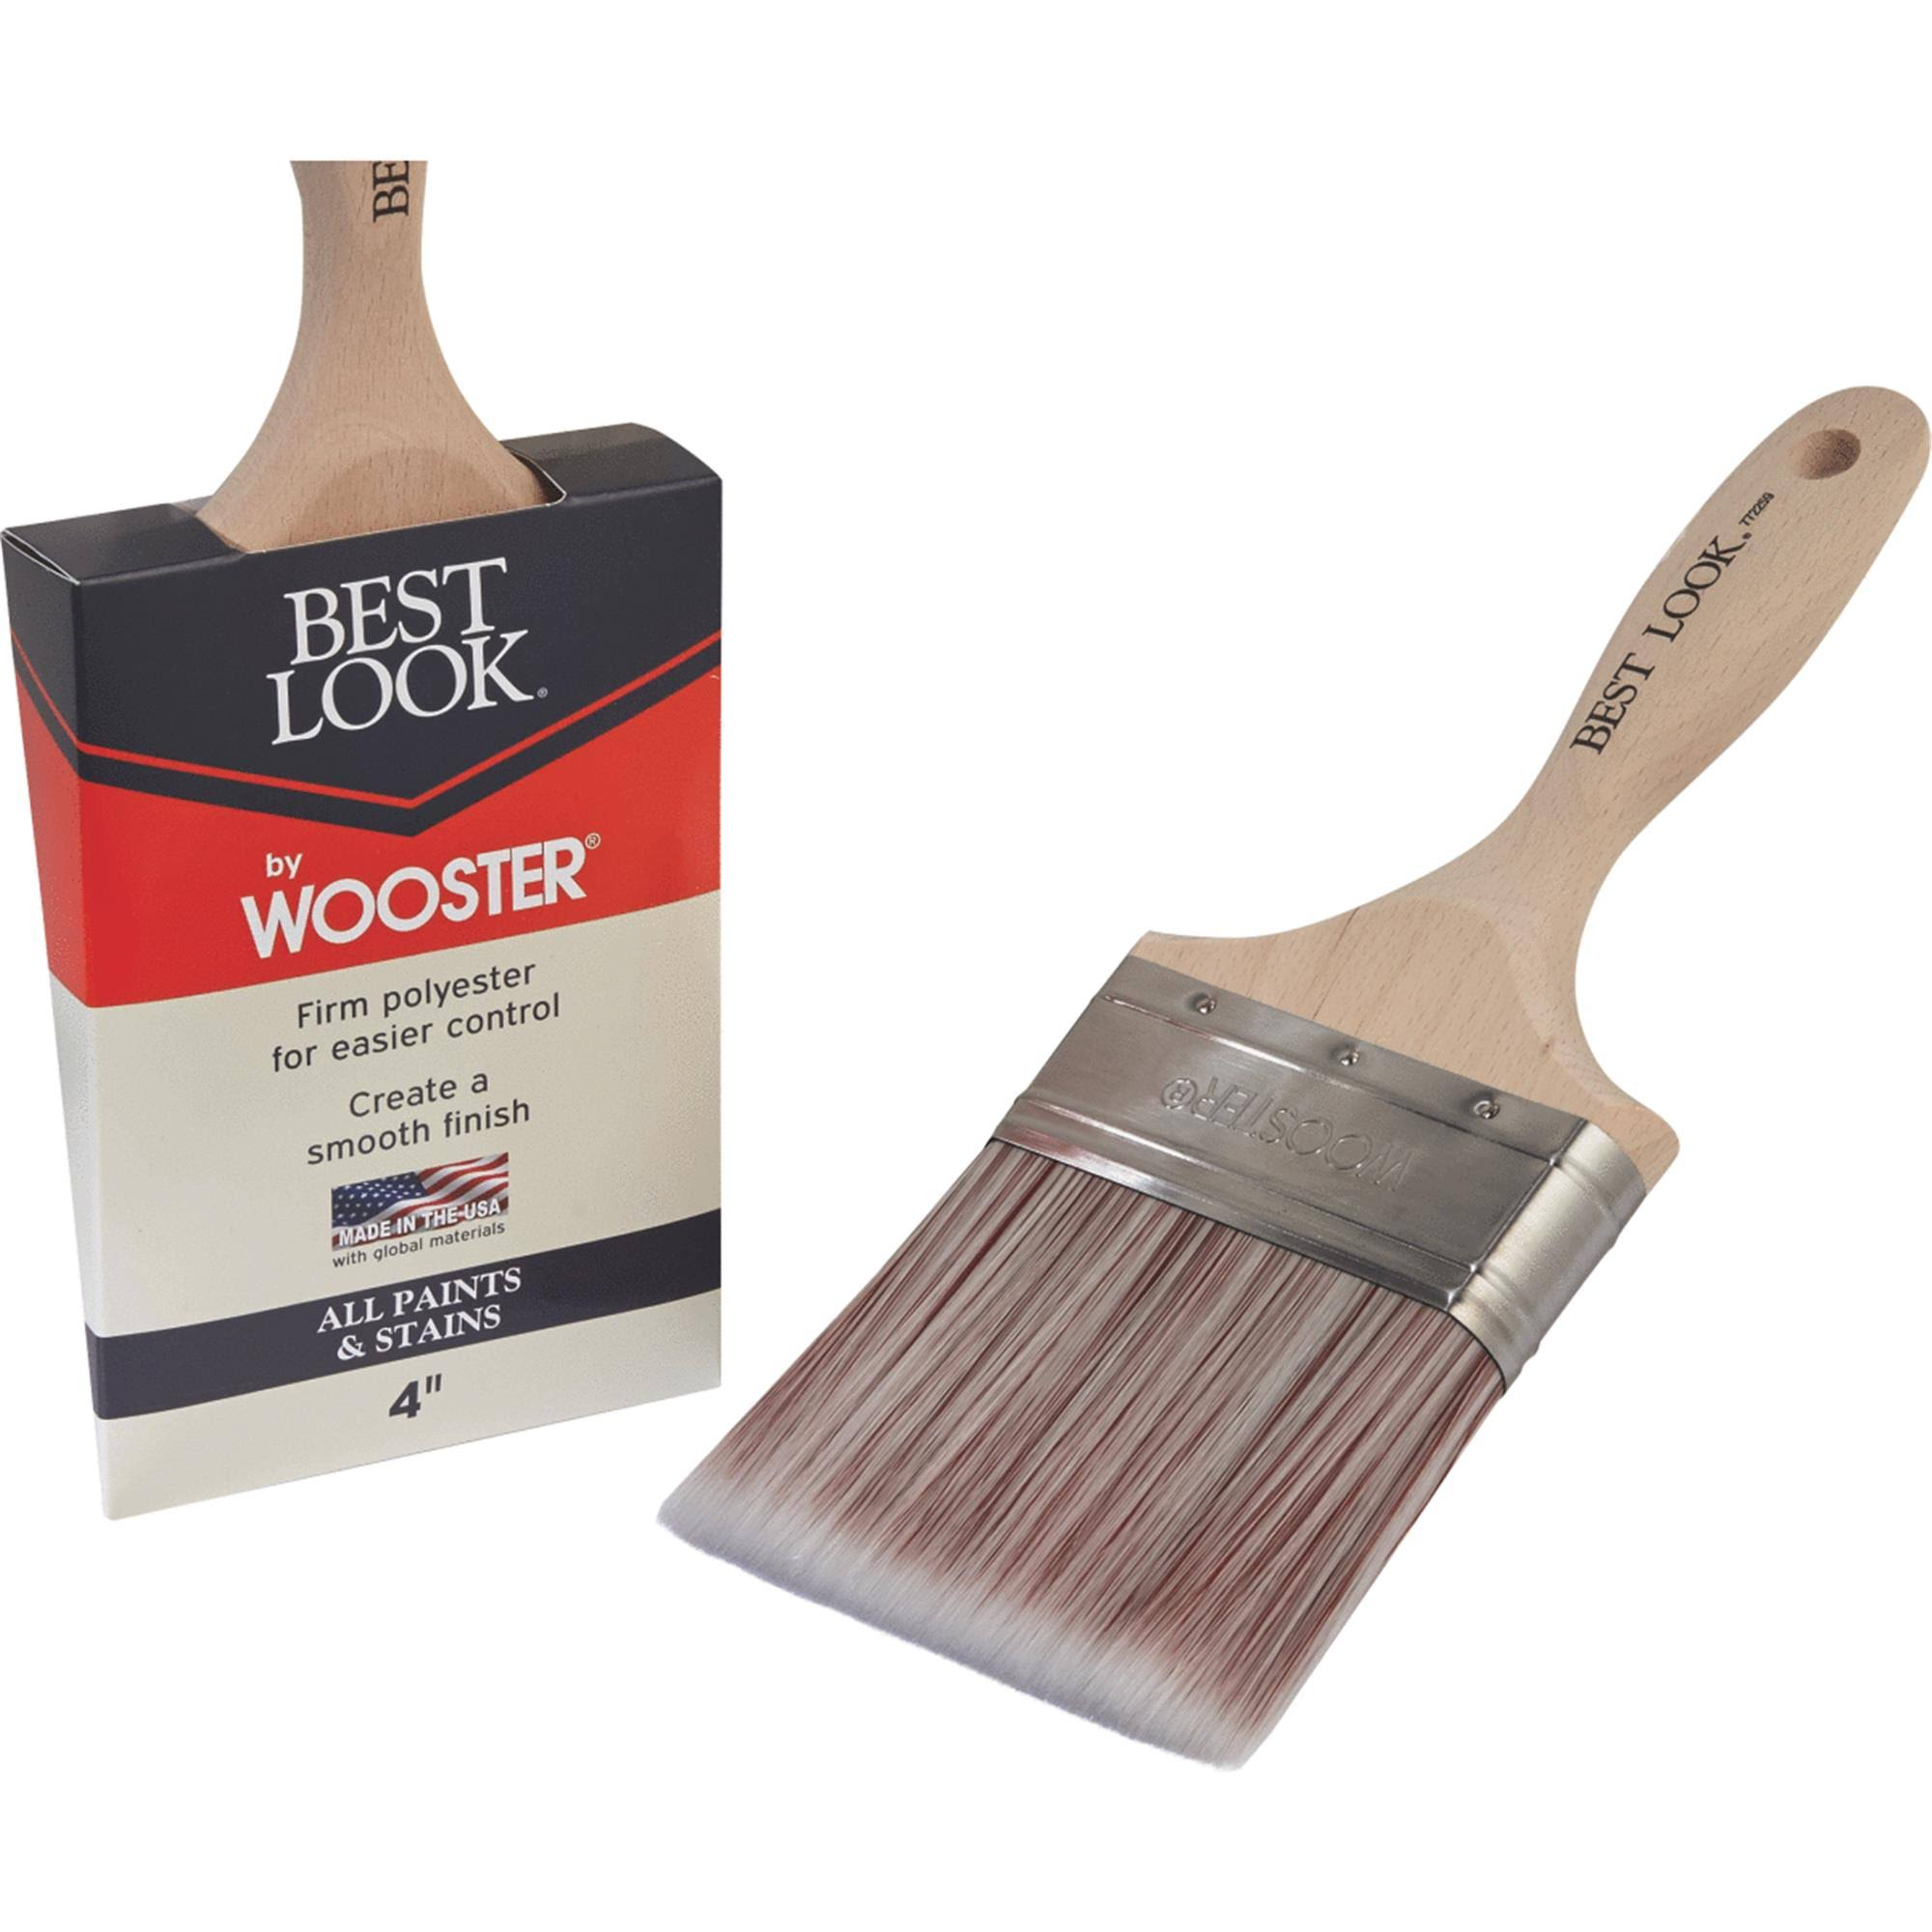 Best Look by Wooster Polyester Paint Brush D4024-4